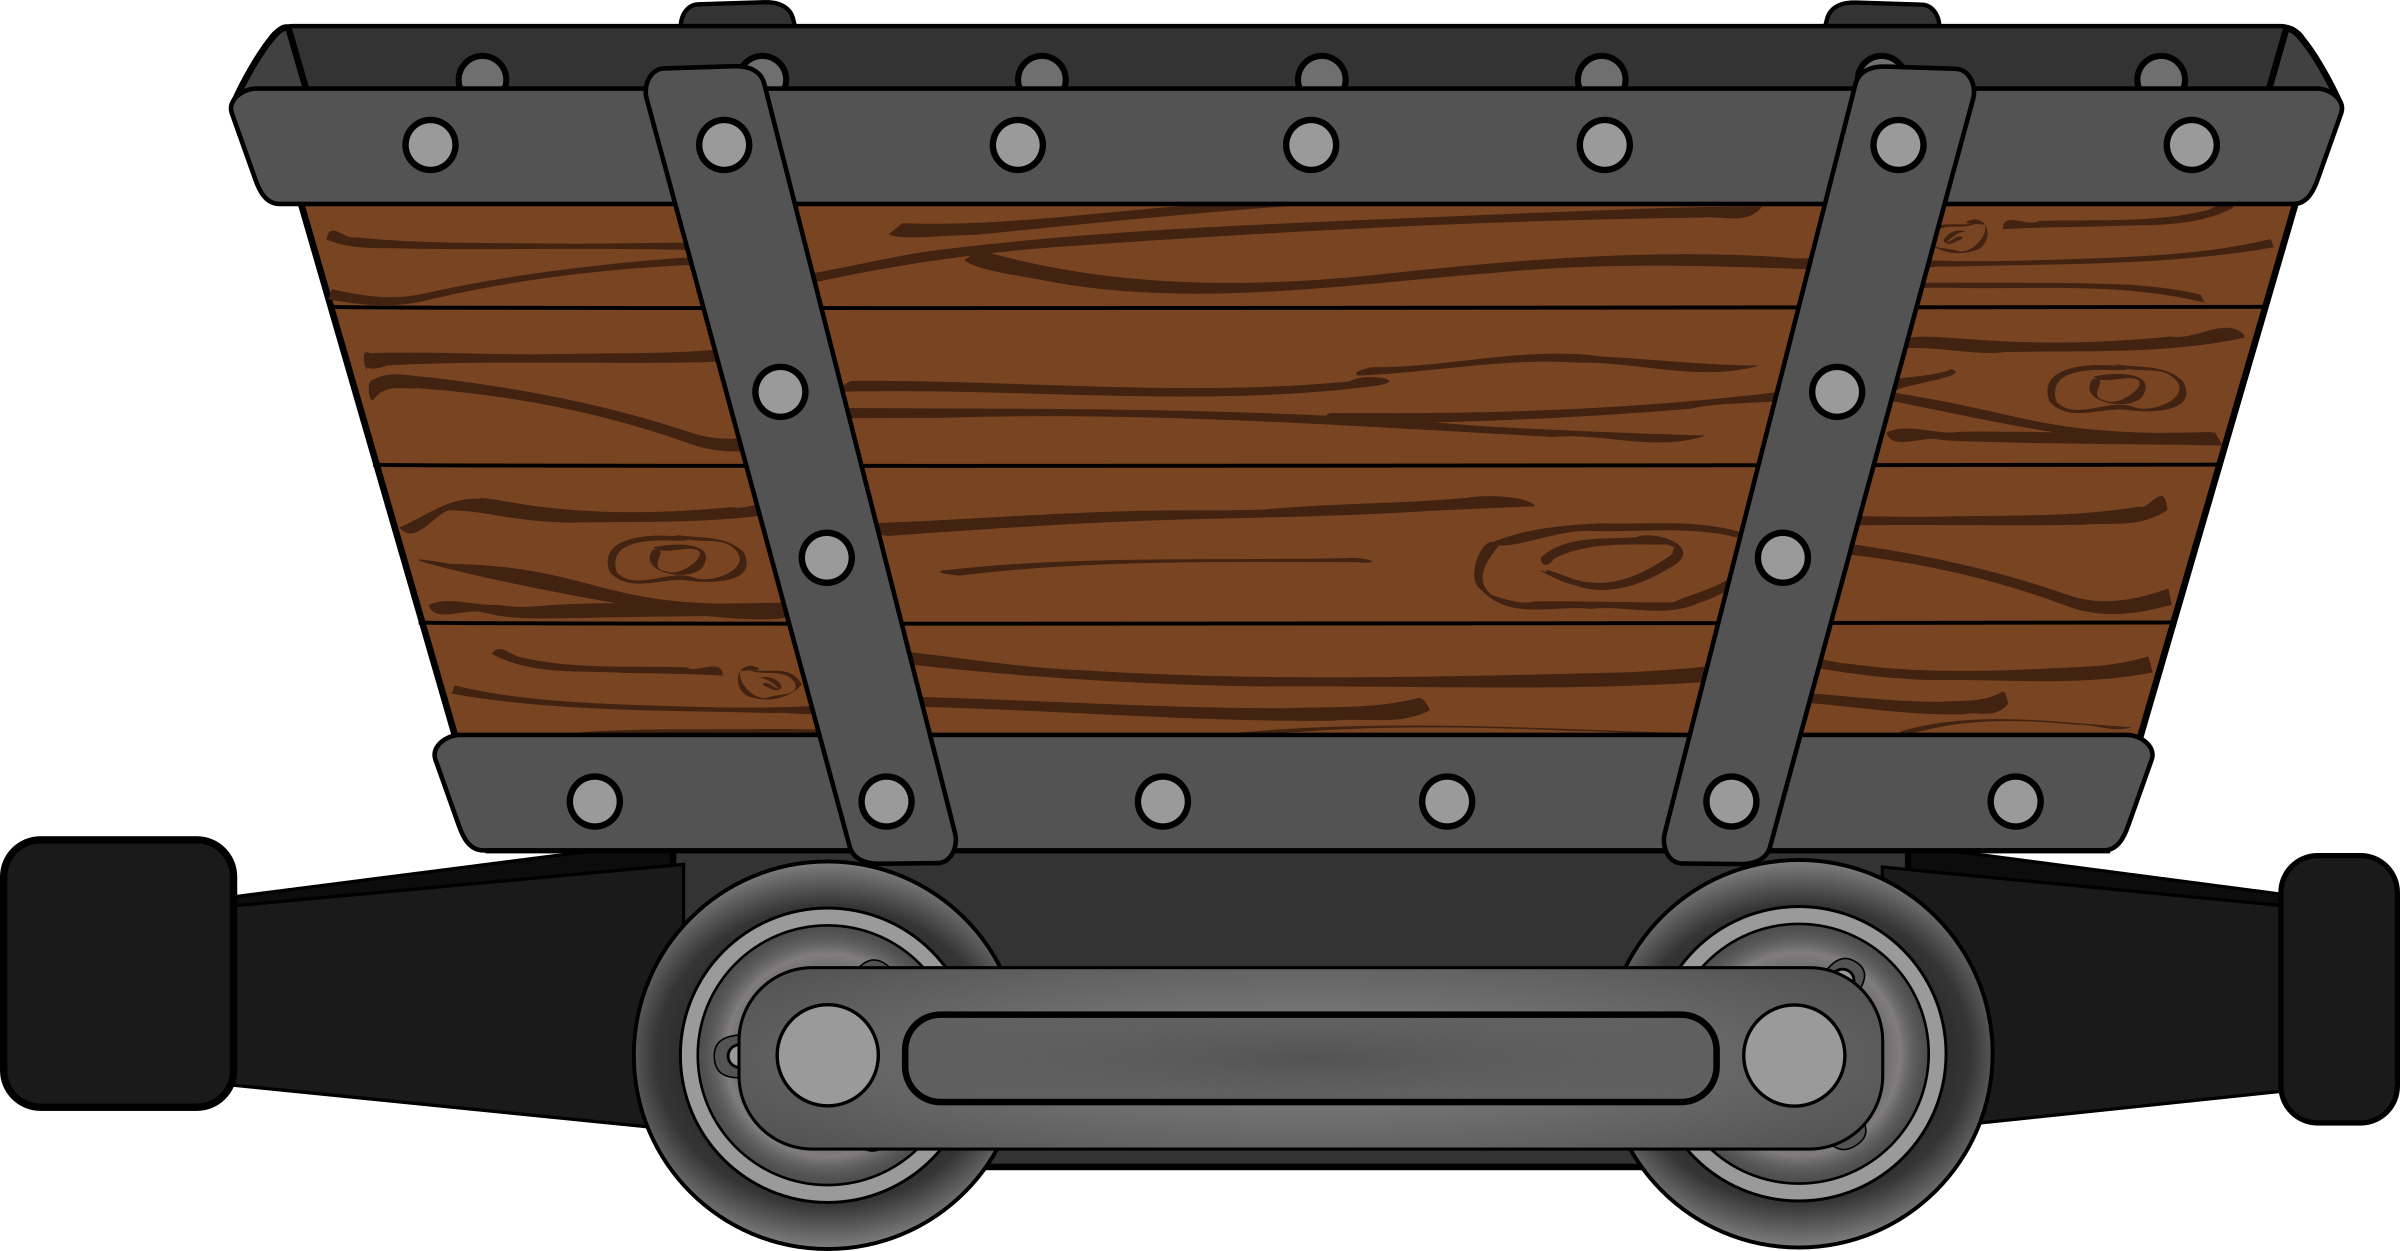 mine mining car by josepetri